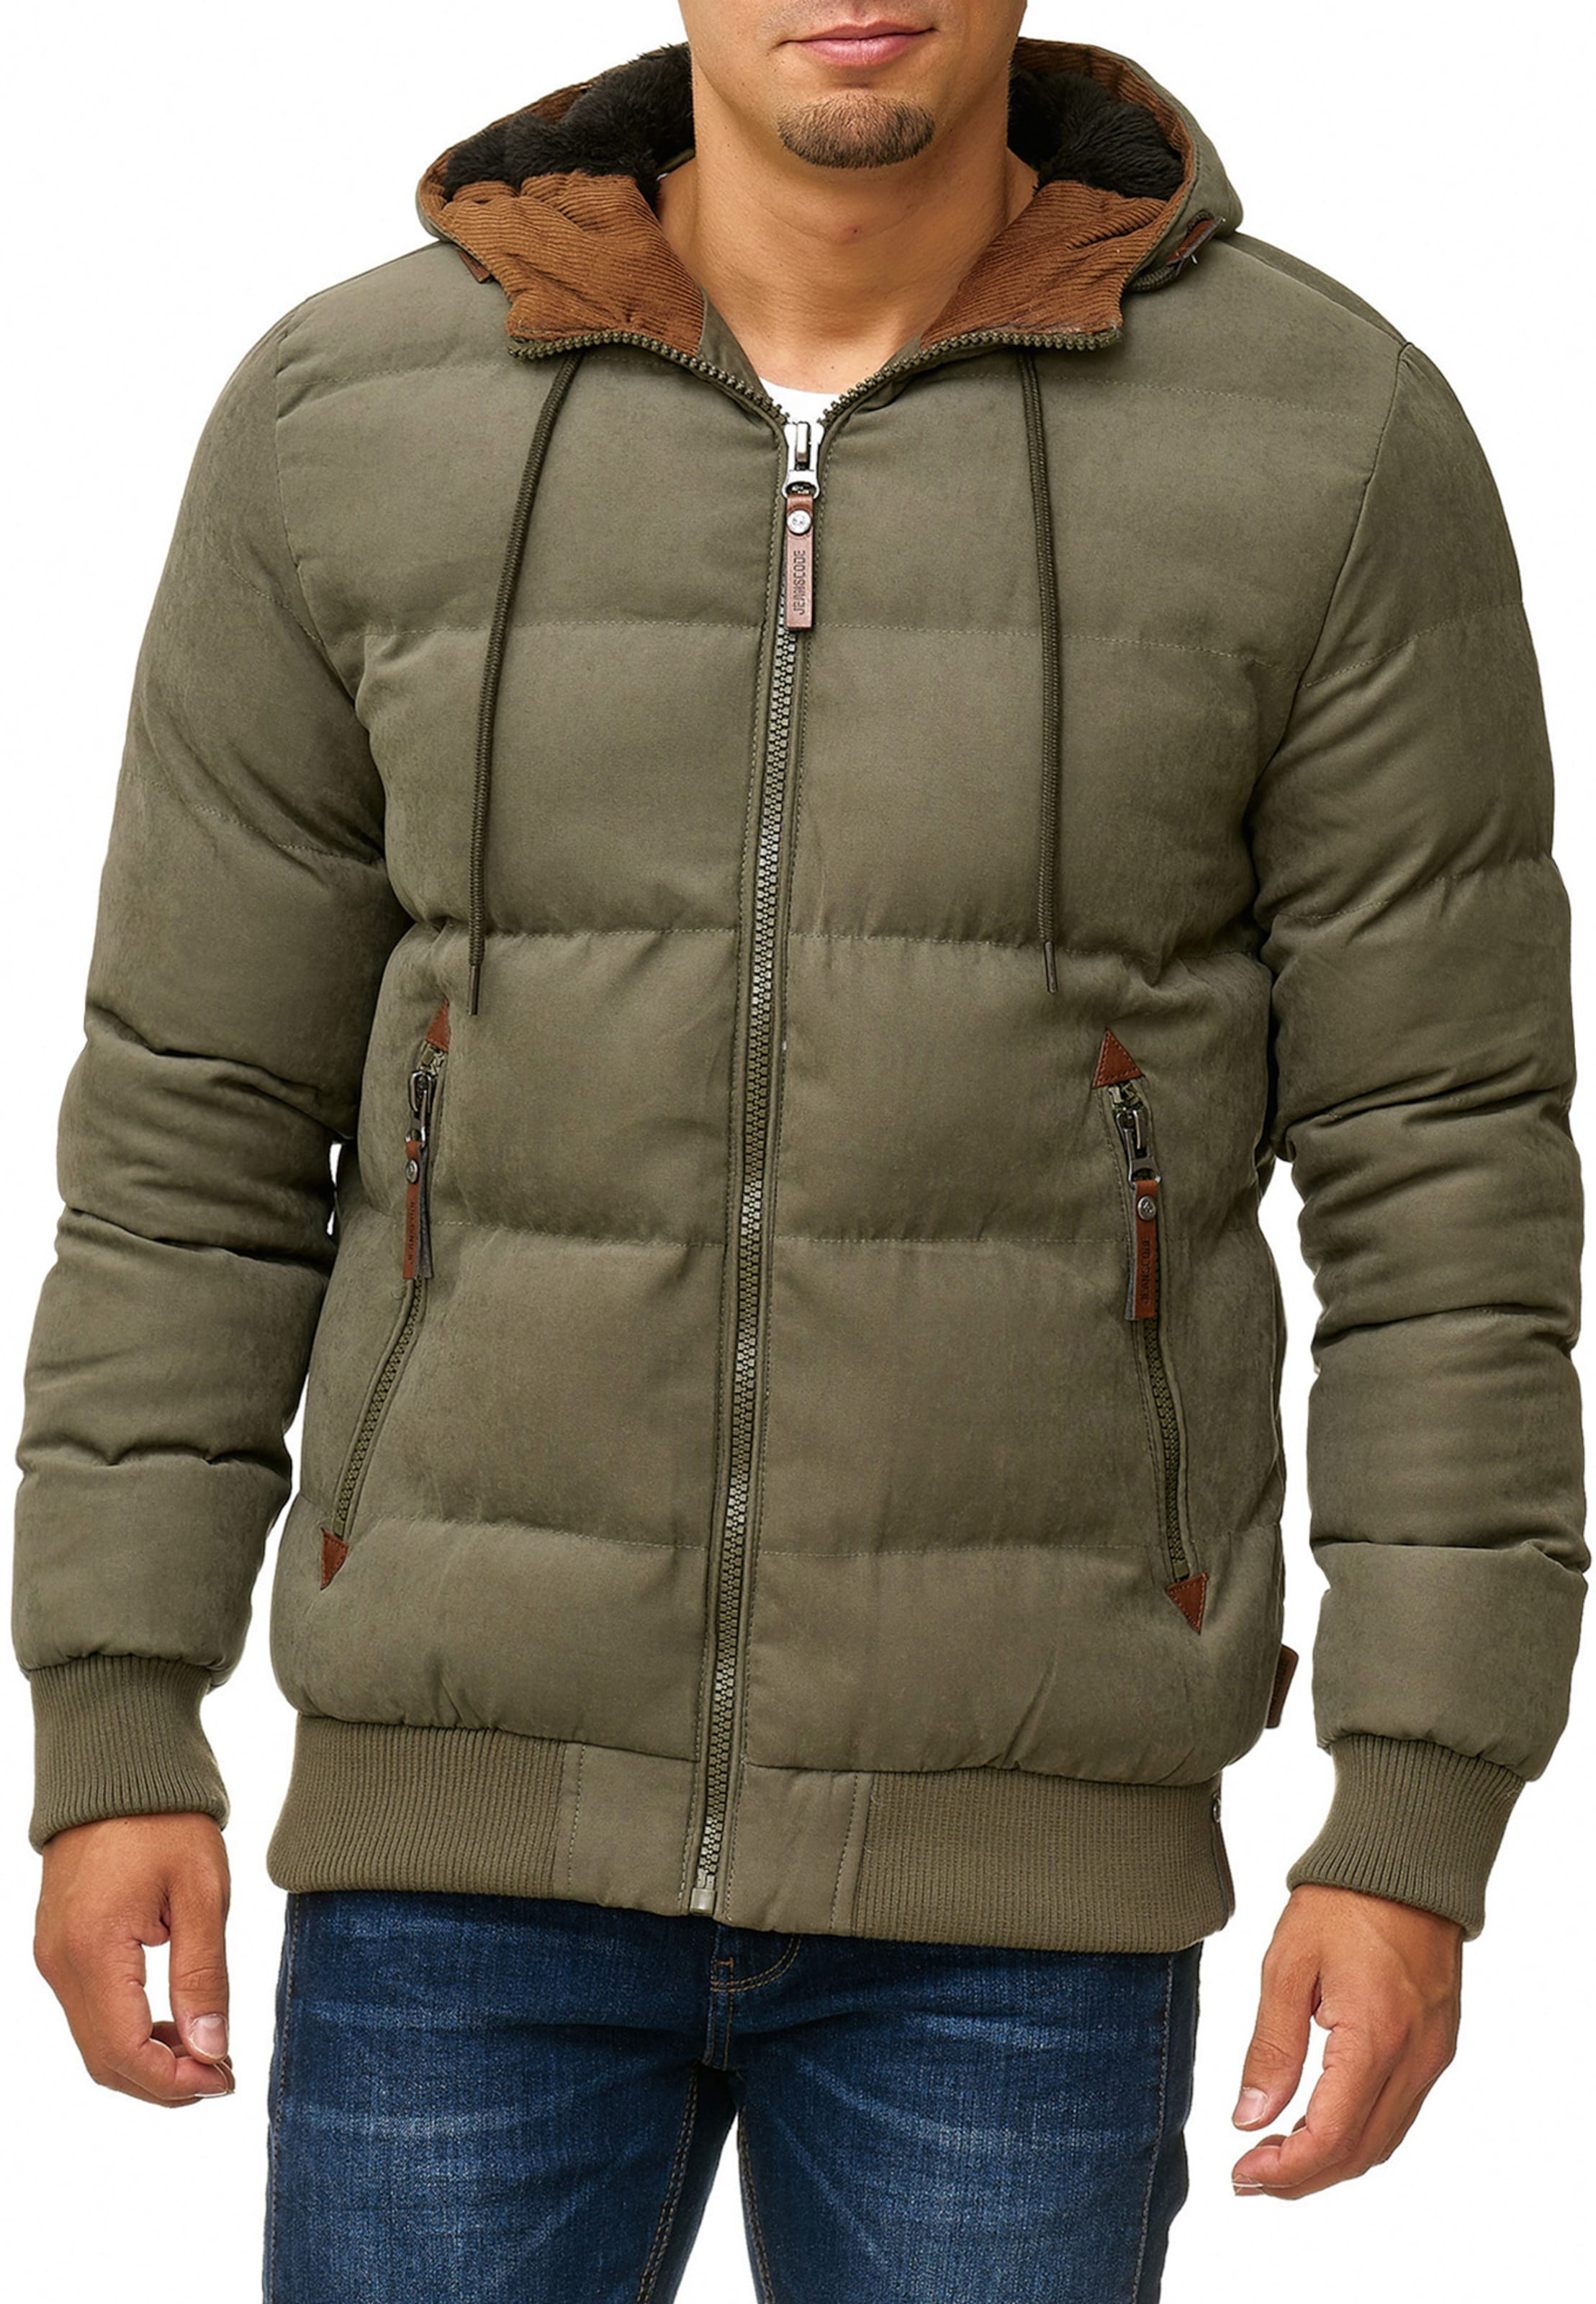 Blouson Indicode BraunOliv Jeans 'adeline' In 4Lc5Rjq3A